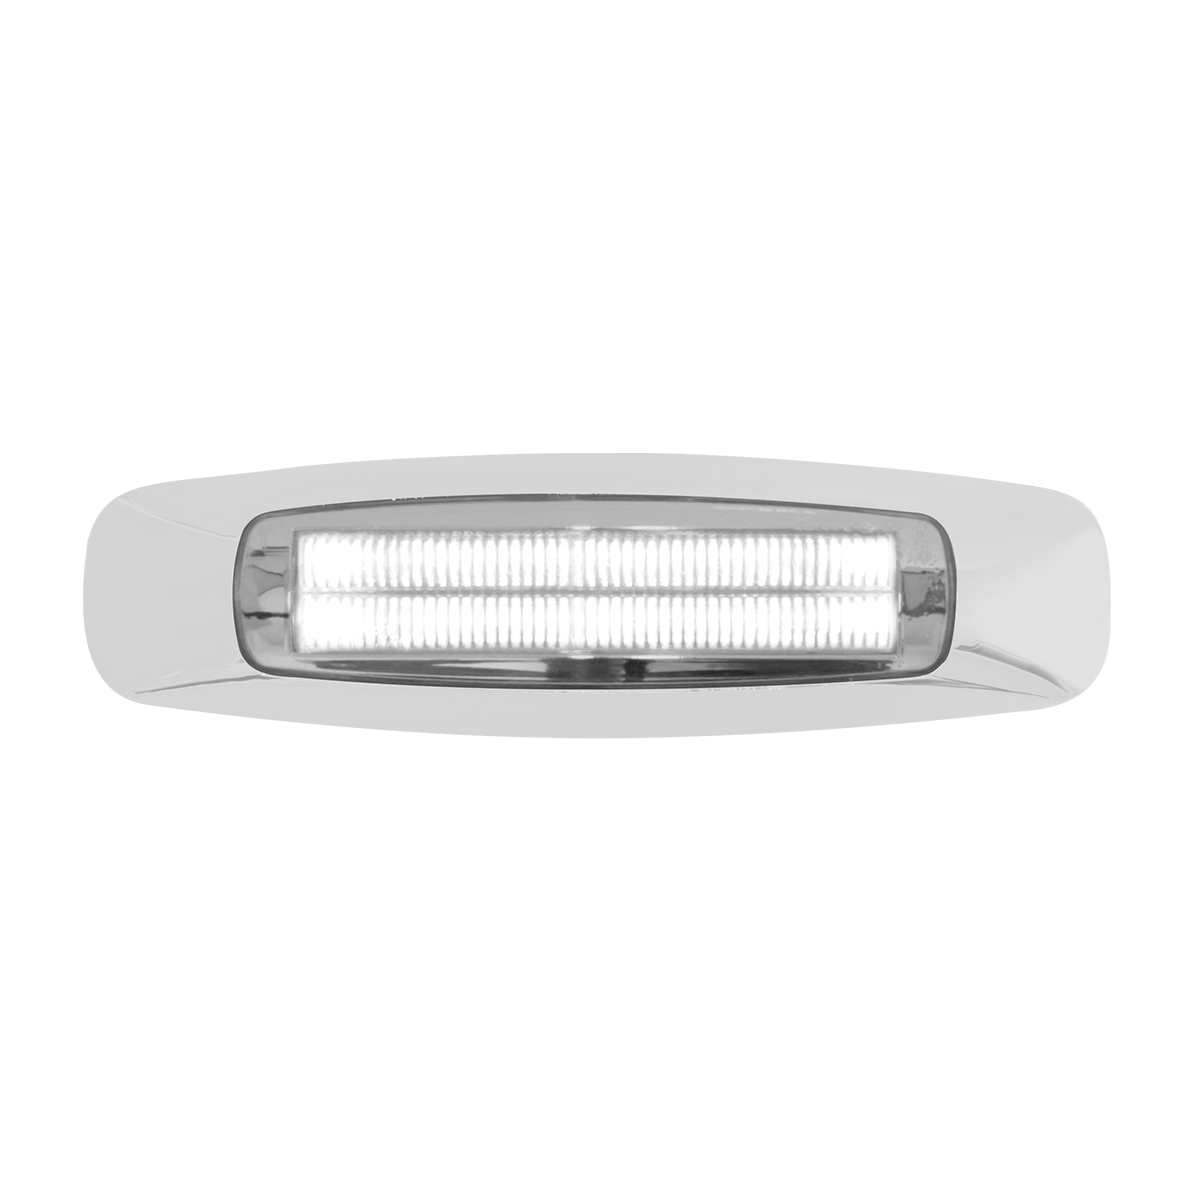 "74744 5-3/4"" Dual Function Rectangular Prime LED Light"